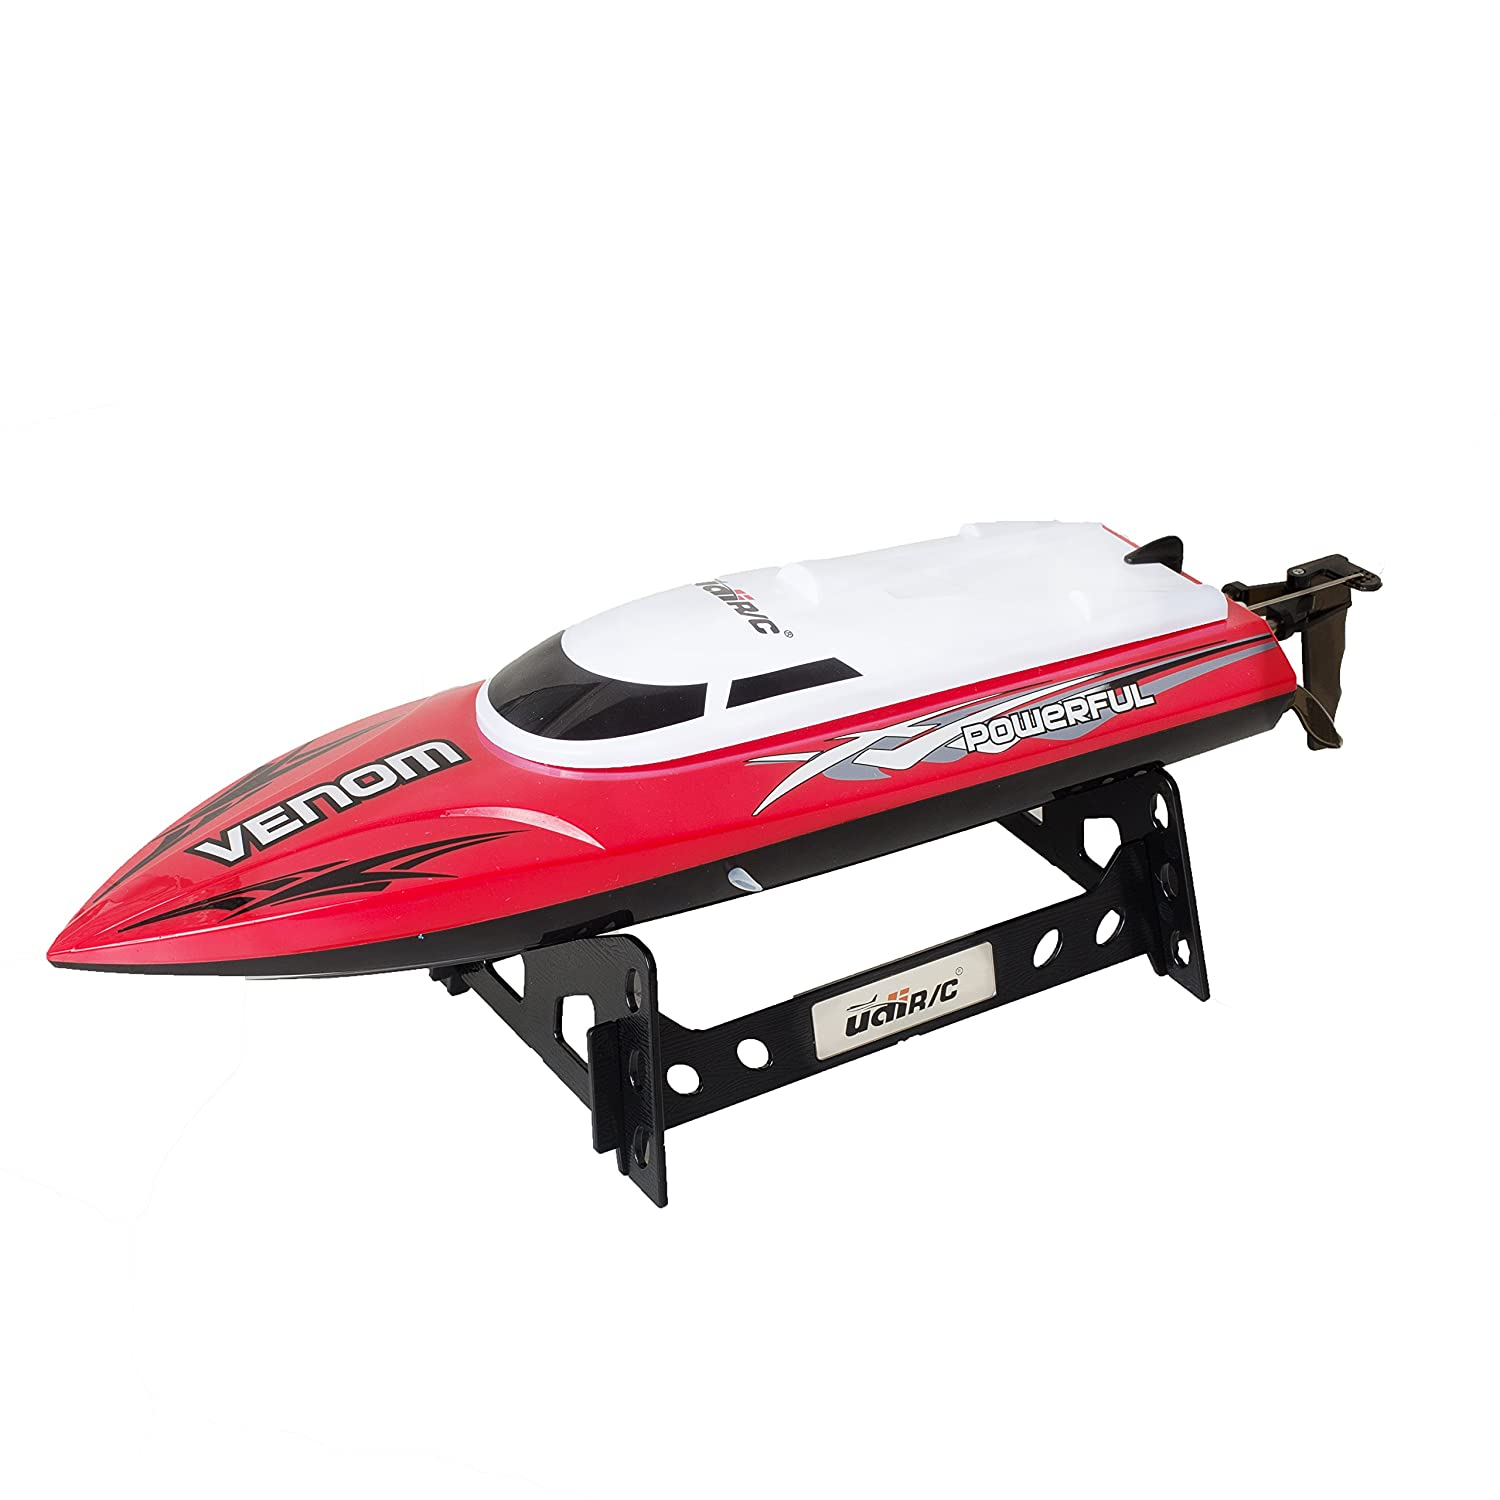 USA Toyz Remote Control Boat for Pools & Lakes – Udi001 Venom Fast RC Boat for Kids & Adults, Self Righting Remote Controlled Boat W/Extra Battery (Red)